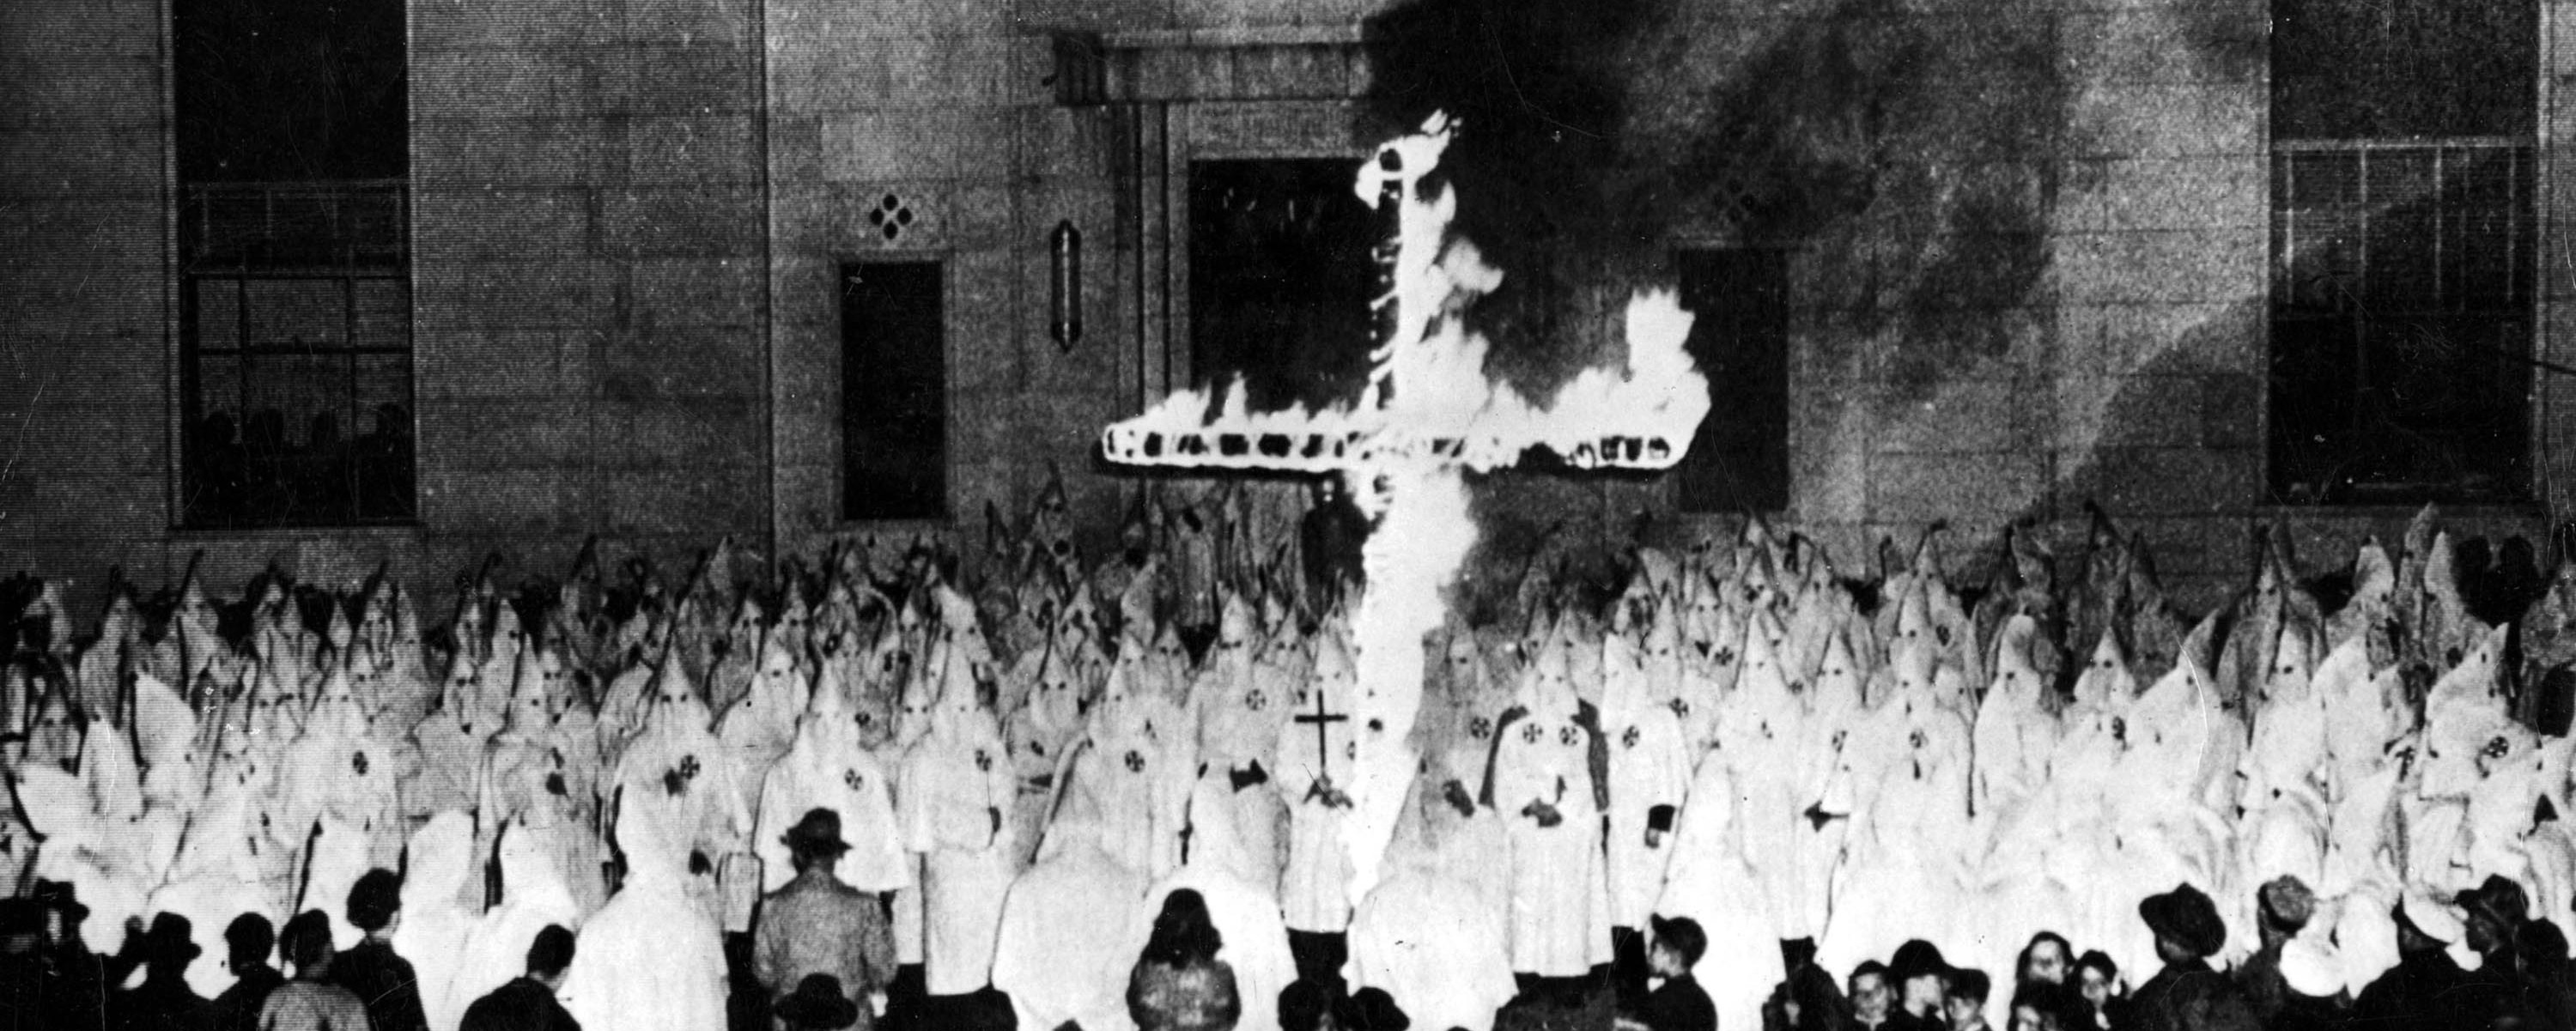 an introduction to the issue of the ku klux klan In today's excerpt – the alliance between the church and the ku klux klan that was crucial both to enacting prohibition and the maintaining it for thirteen years.